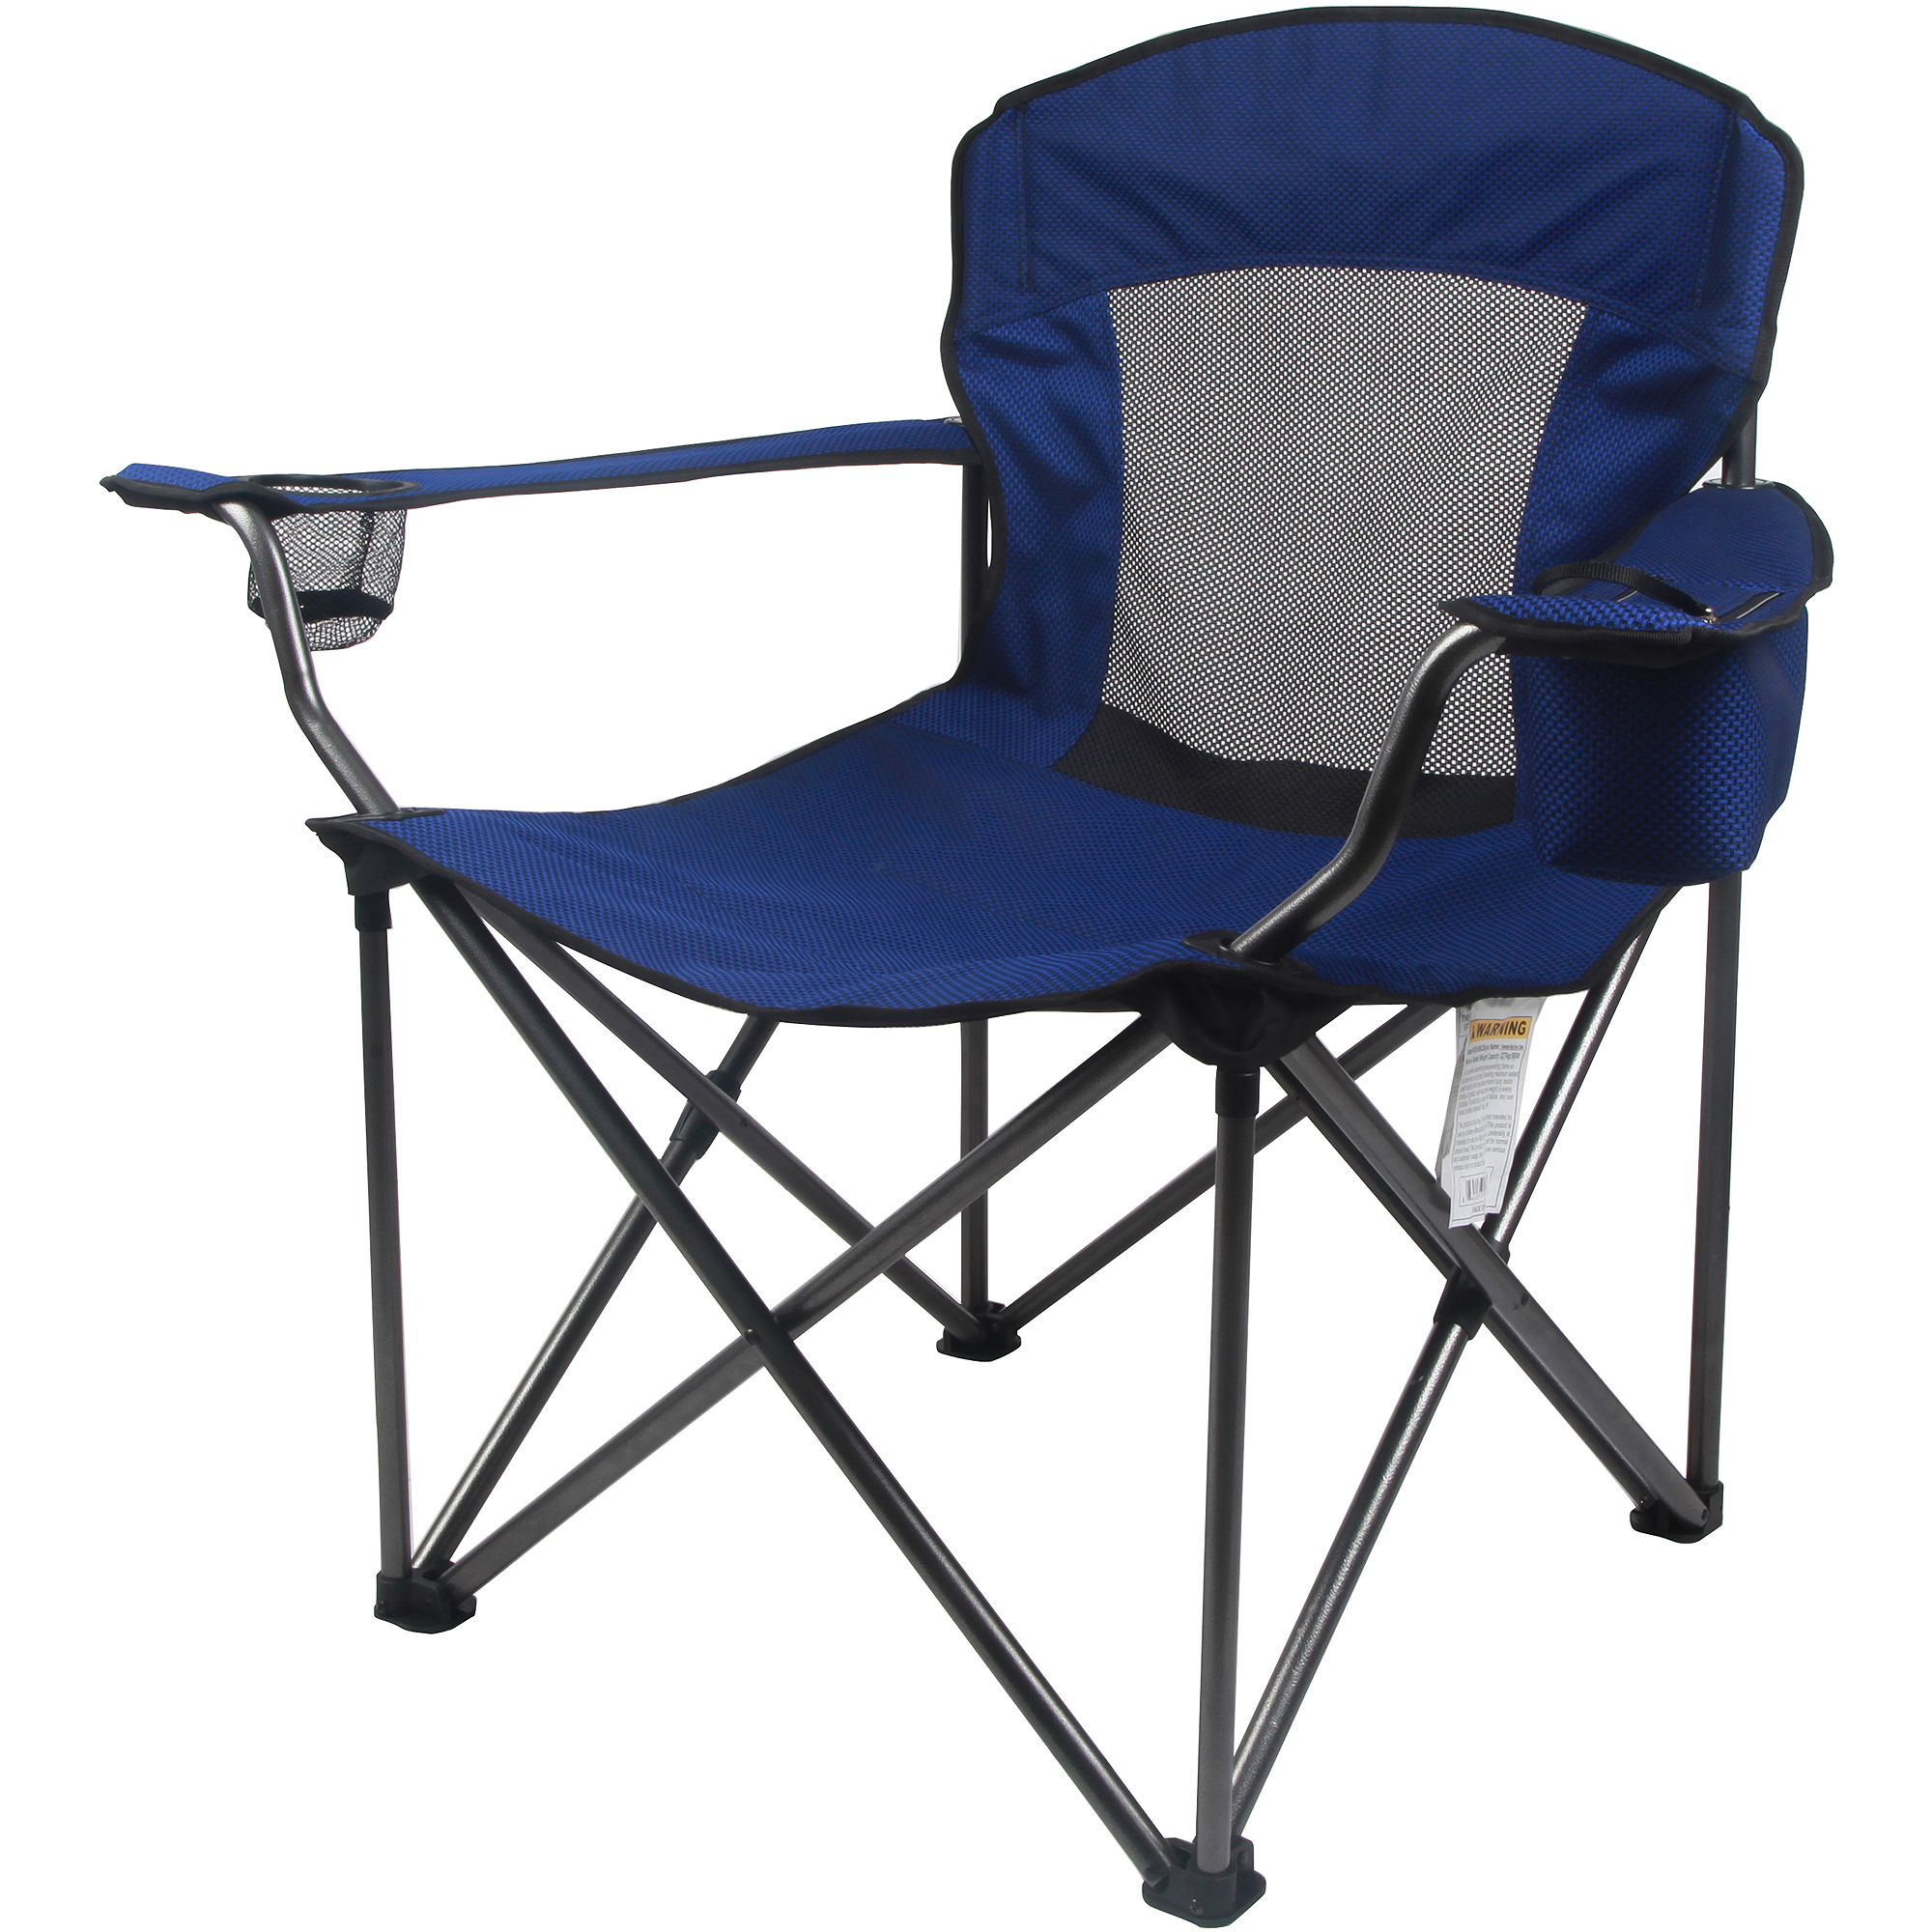 Folding Arm Chair Ozark Trail Deluxe Folding Camping Arm Chair Walmart